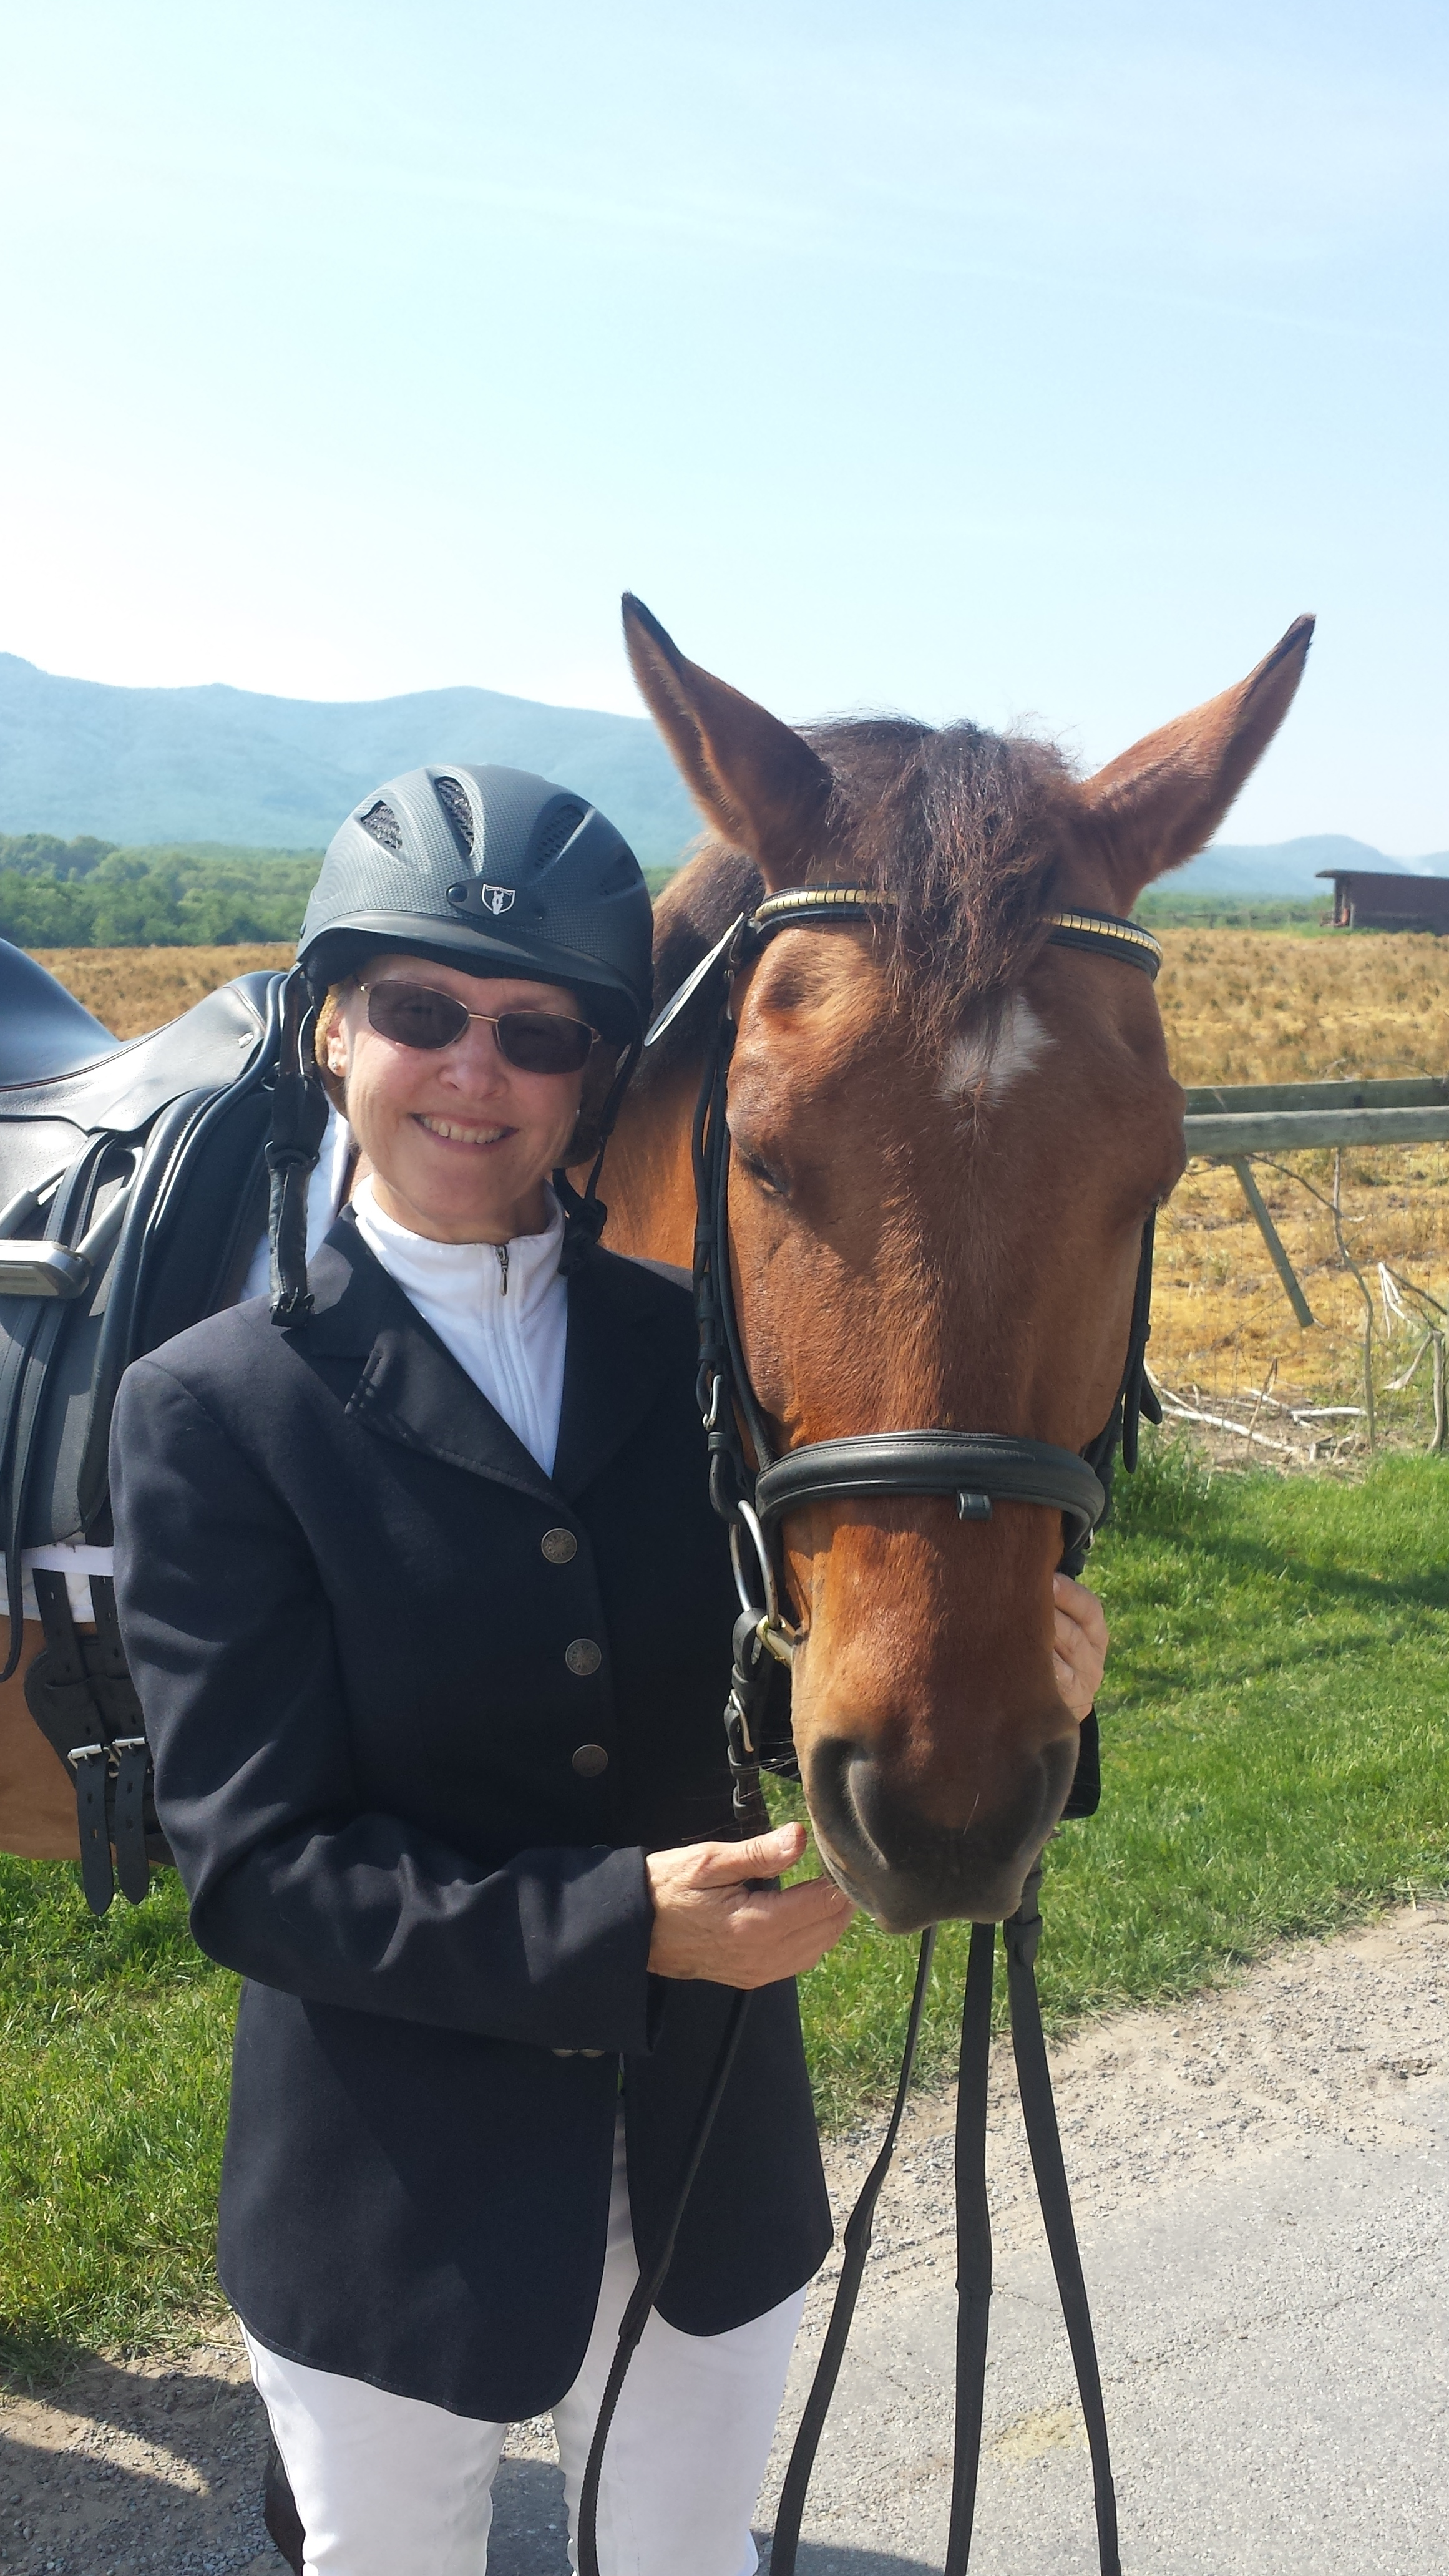 Biddie Lowry, a former eventer, fell in love with Working Equitation this year. Photo shows Biddie with her horse, Oliver, at the Mother's Day Working Equitation Show in Virginia where she was Reserve Champion at the Novice A level.